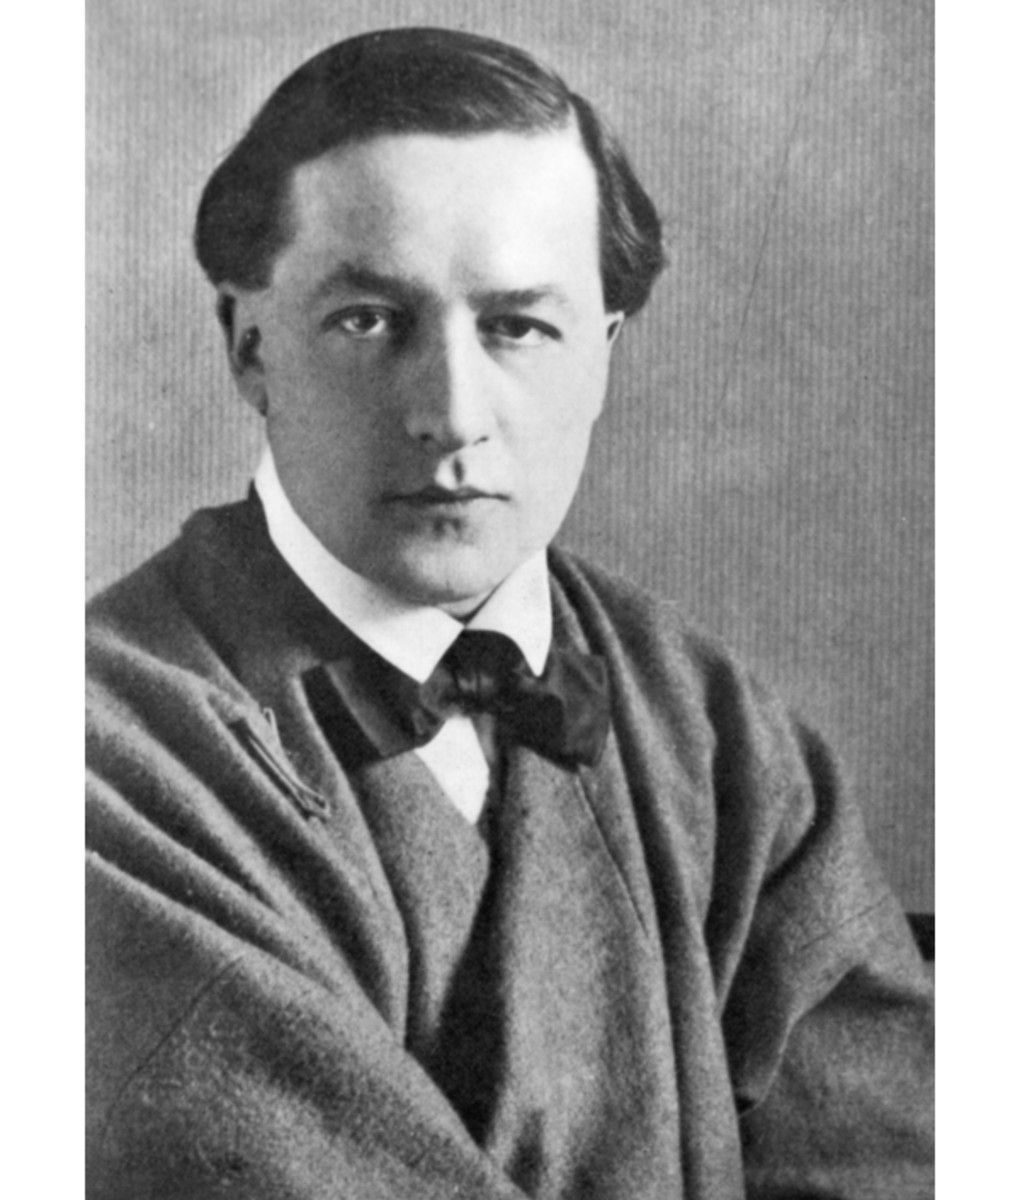 Here we show a vintage photograph of Edmund Dulac.